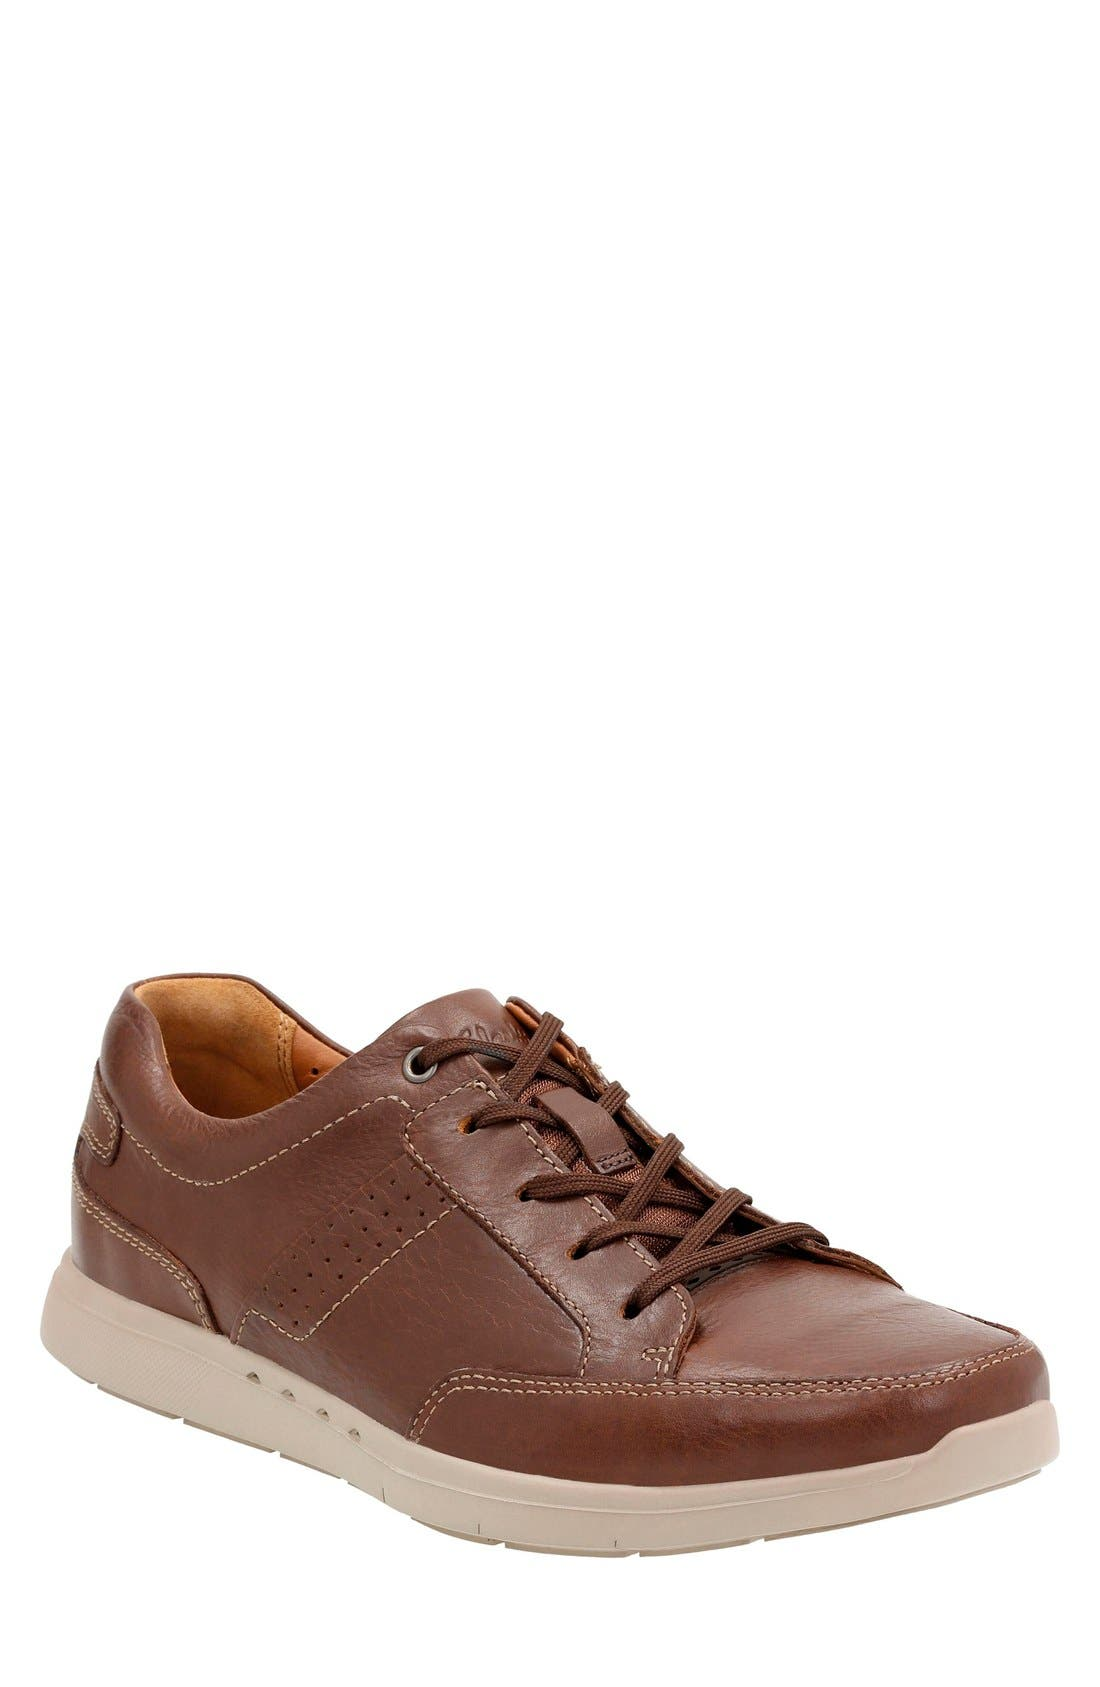 CLARKS<SUP>®</SUP> Unstructured - Lomac Leather Sneaker